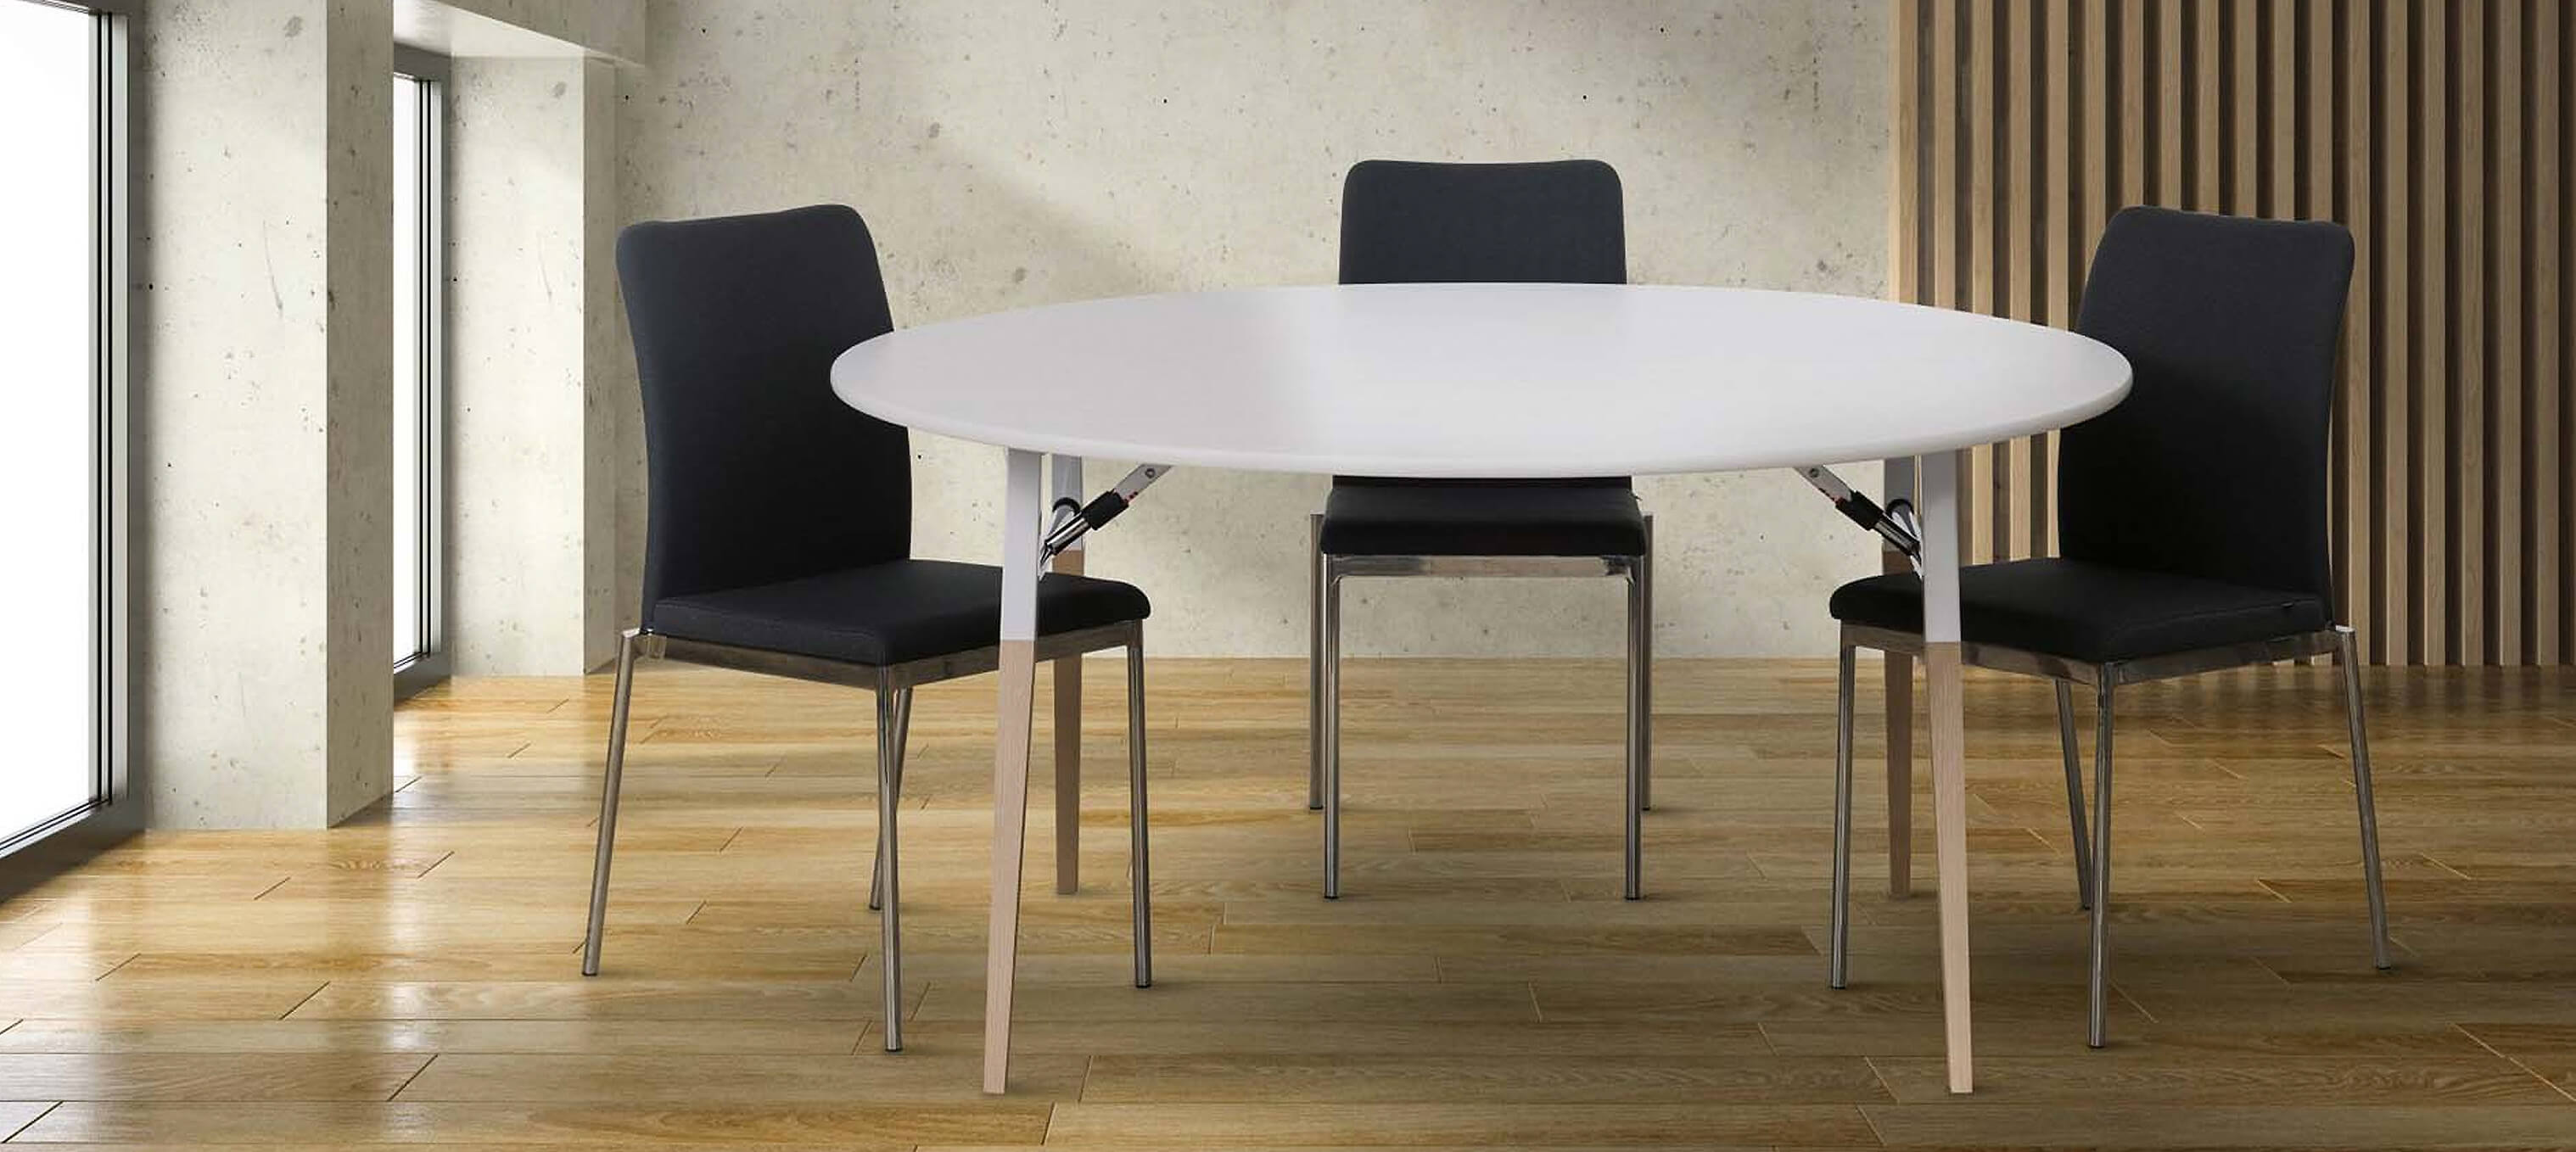 A-fold table and Evosa Office chairs